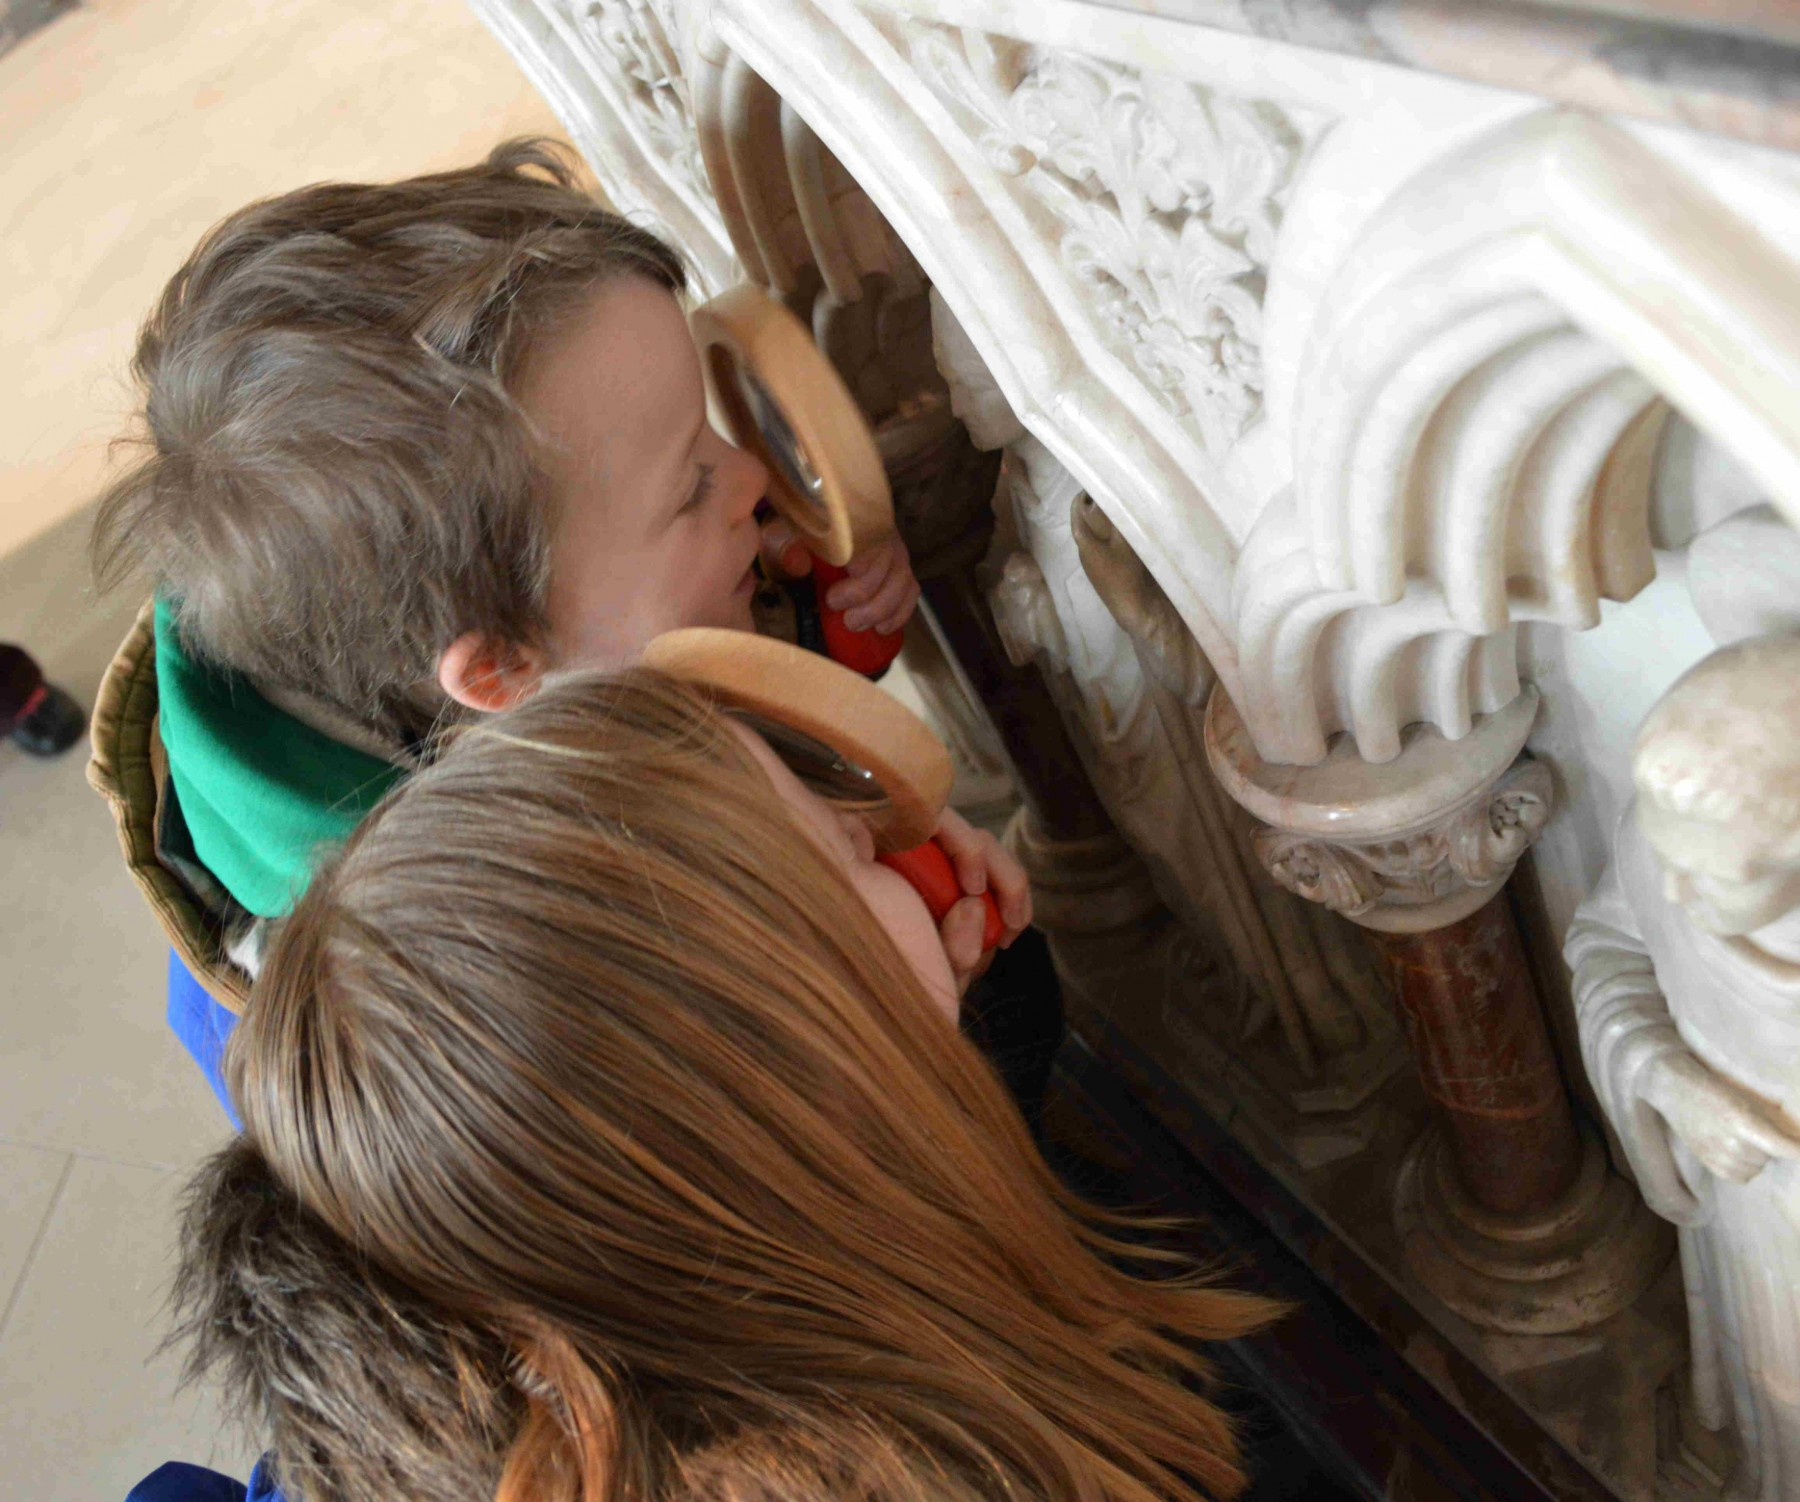 Discovery Week at the Cathedral